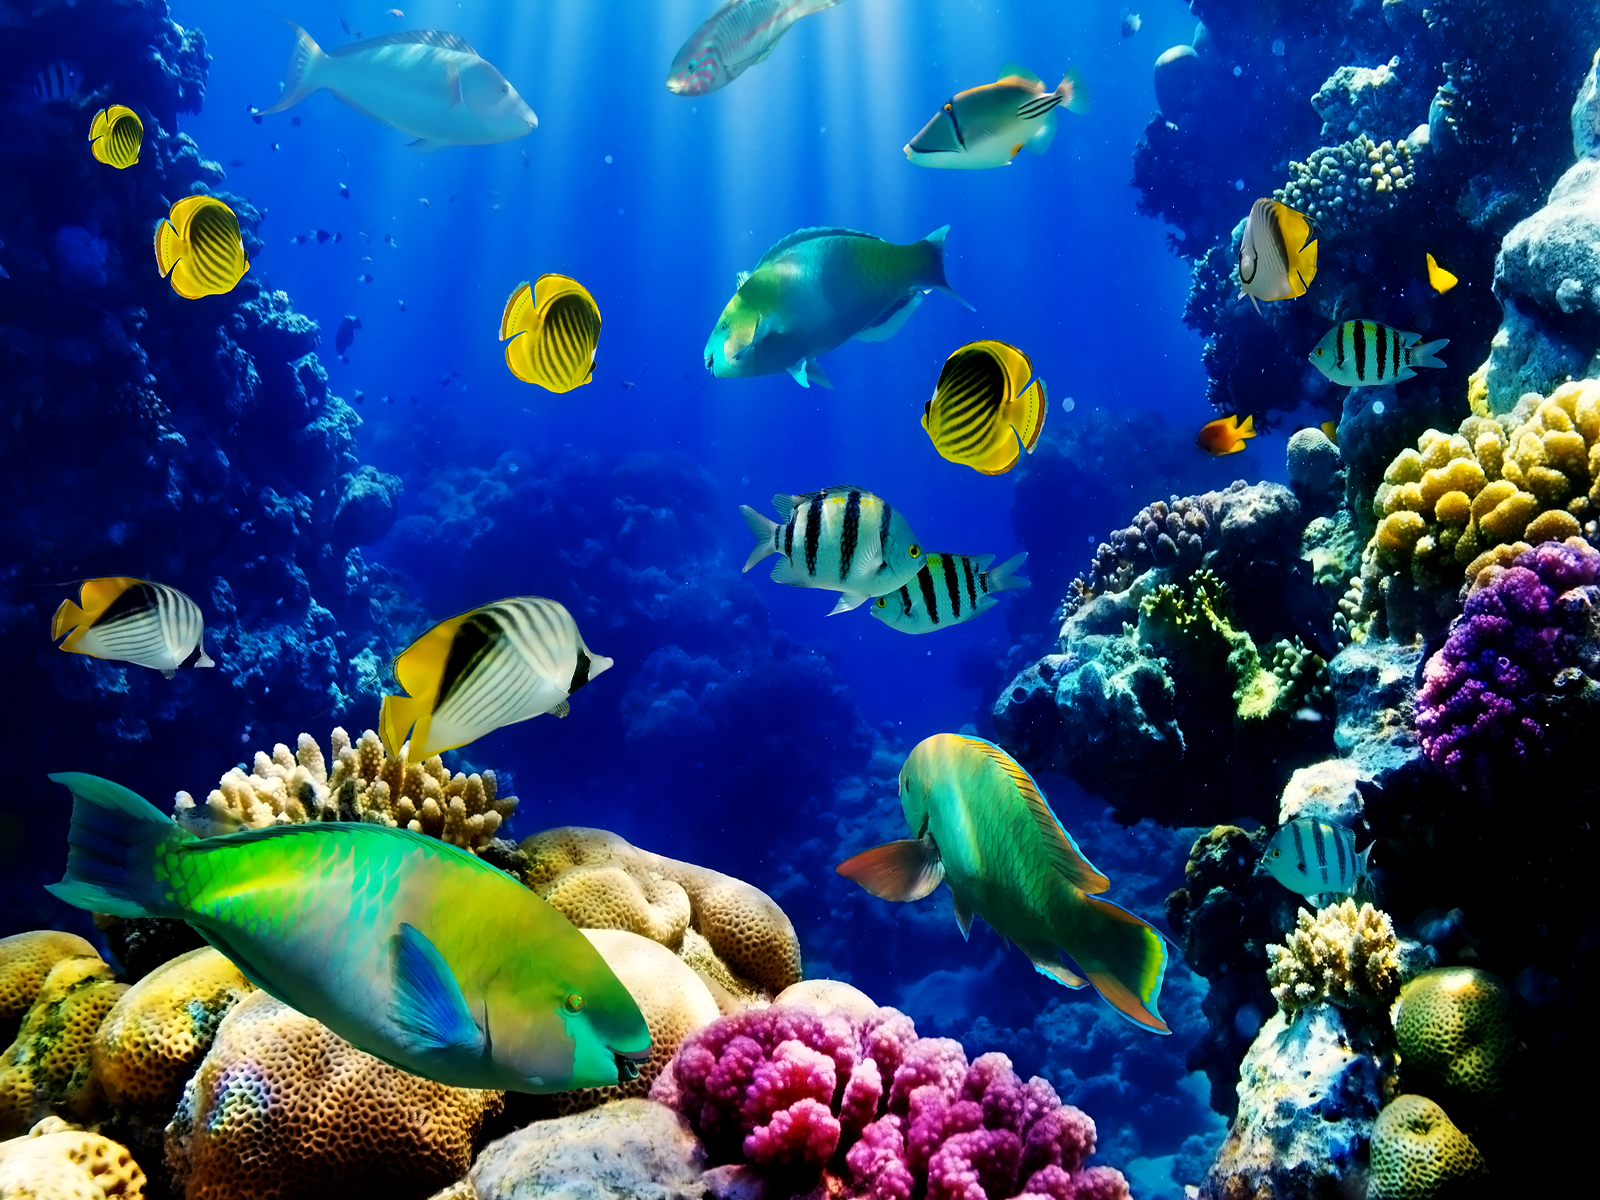 Free Live Moving Fish Wallpaper Wallpapersafari